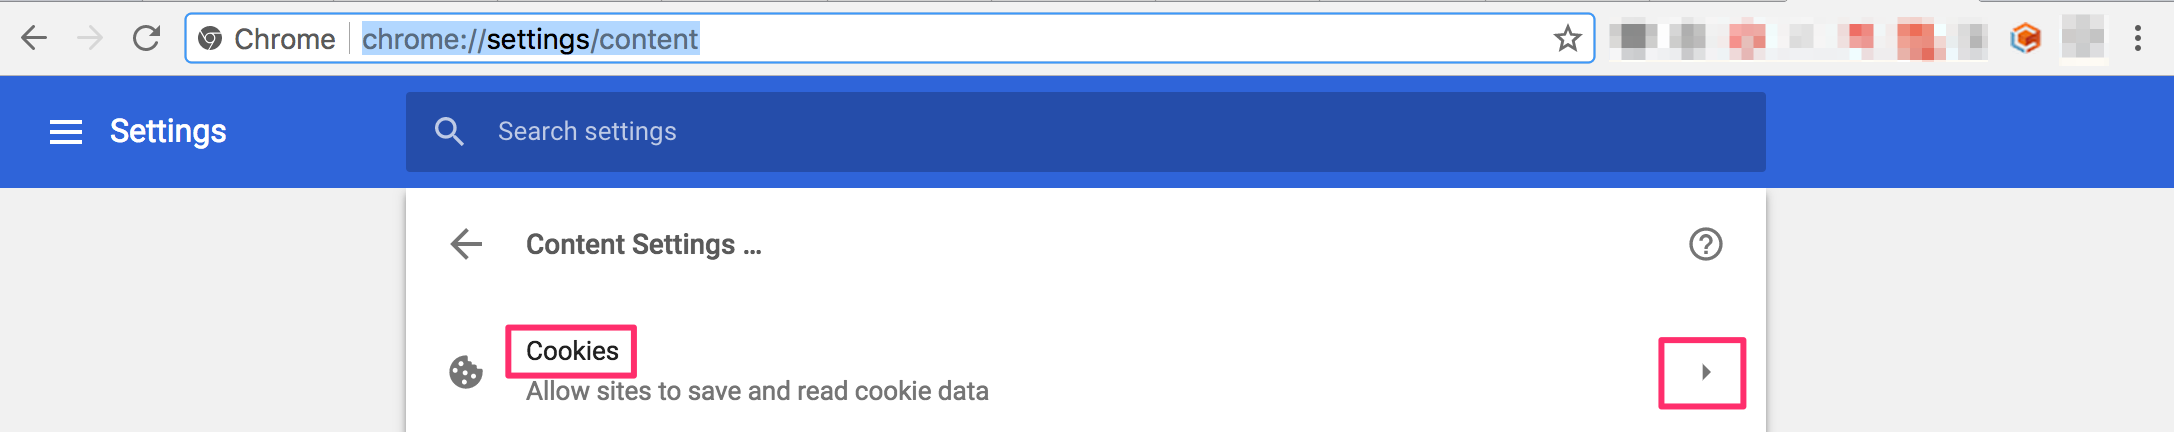 Chrome-settings-content-cookies.png